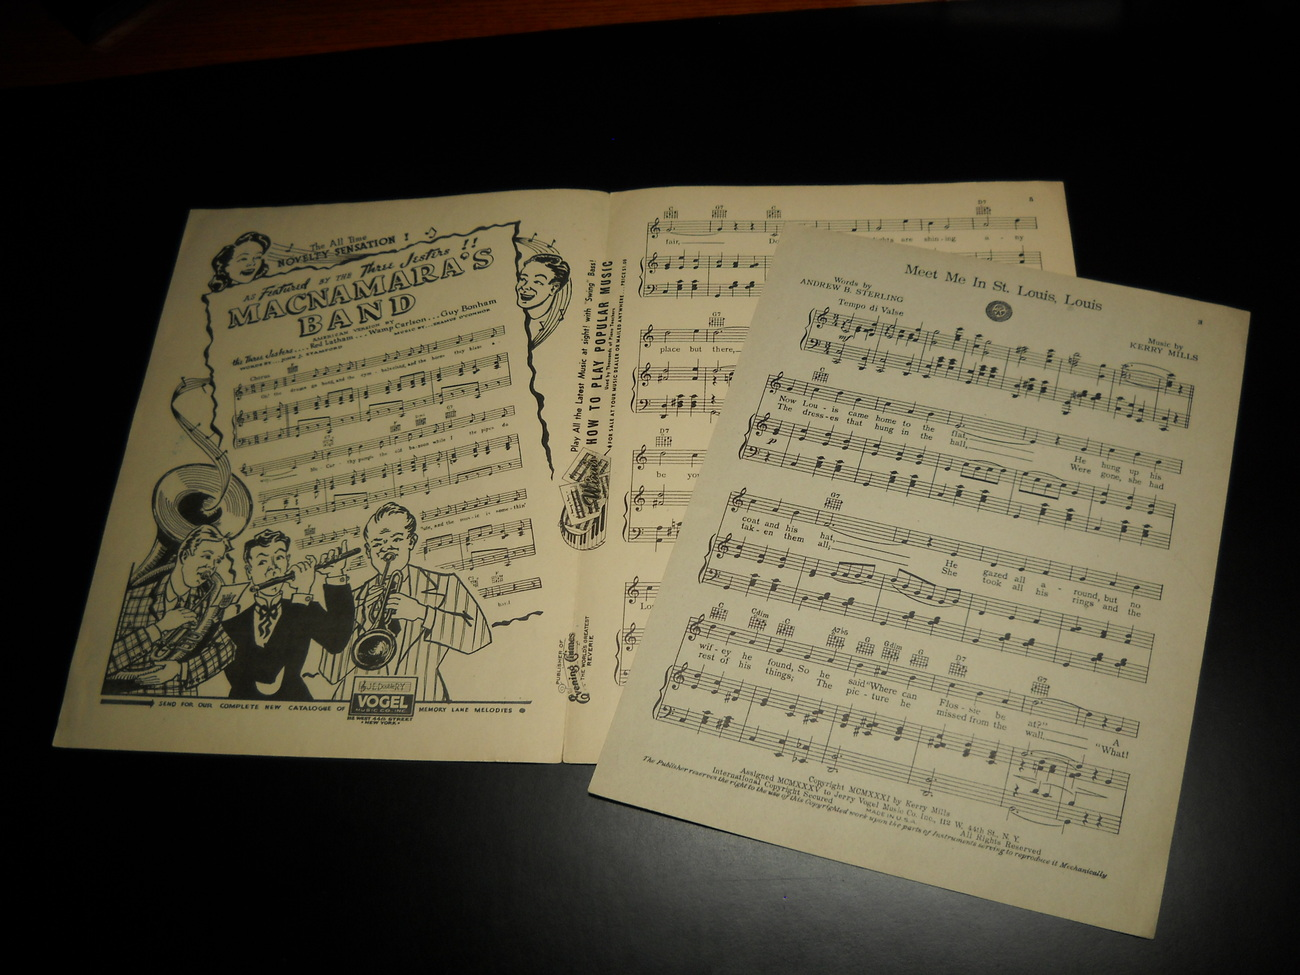 Sheet_music_meet_me_in_st_louis_louis_judy_garland_1935_vogel_music_05